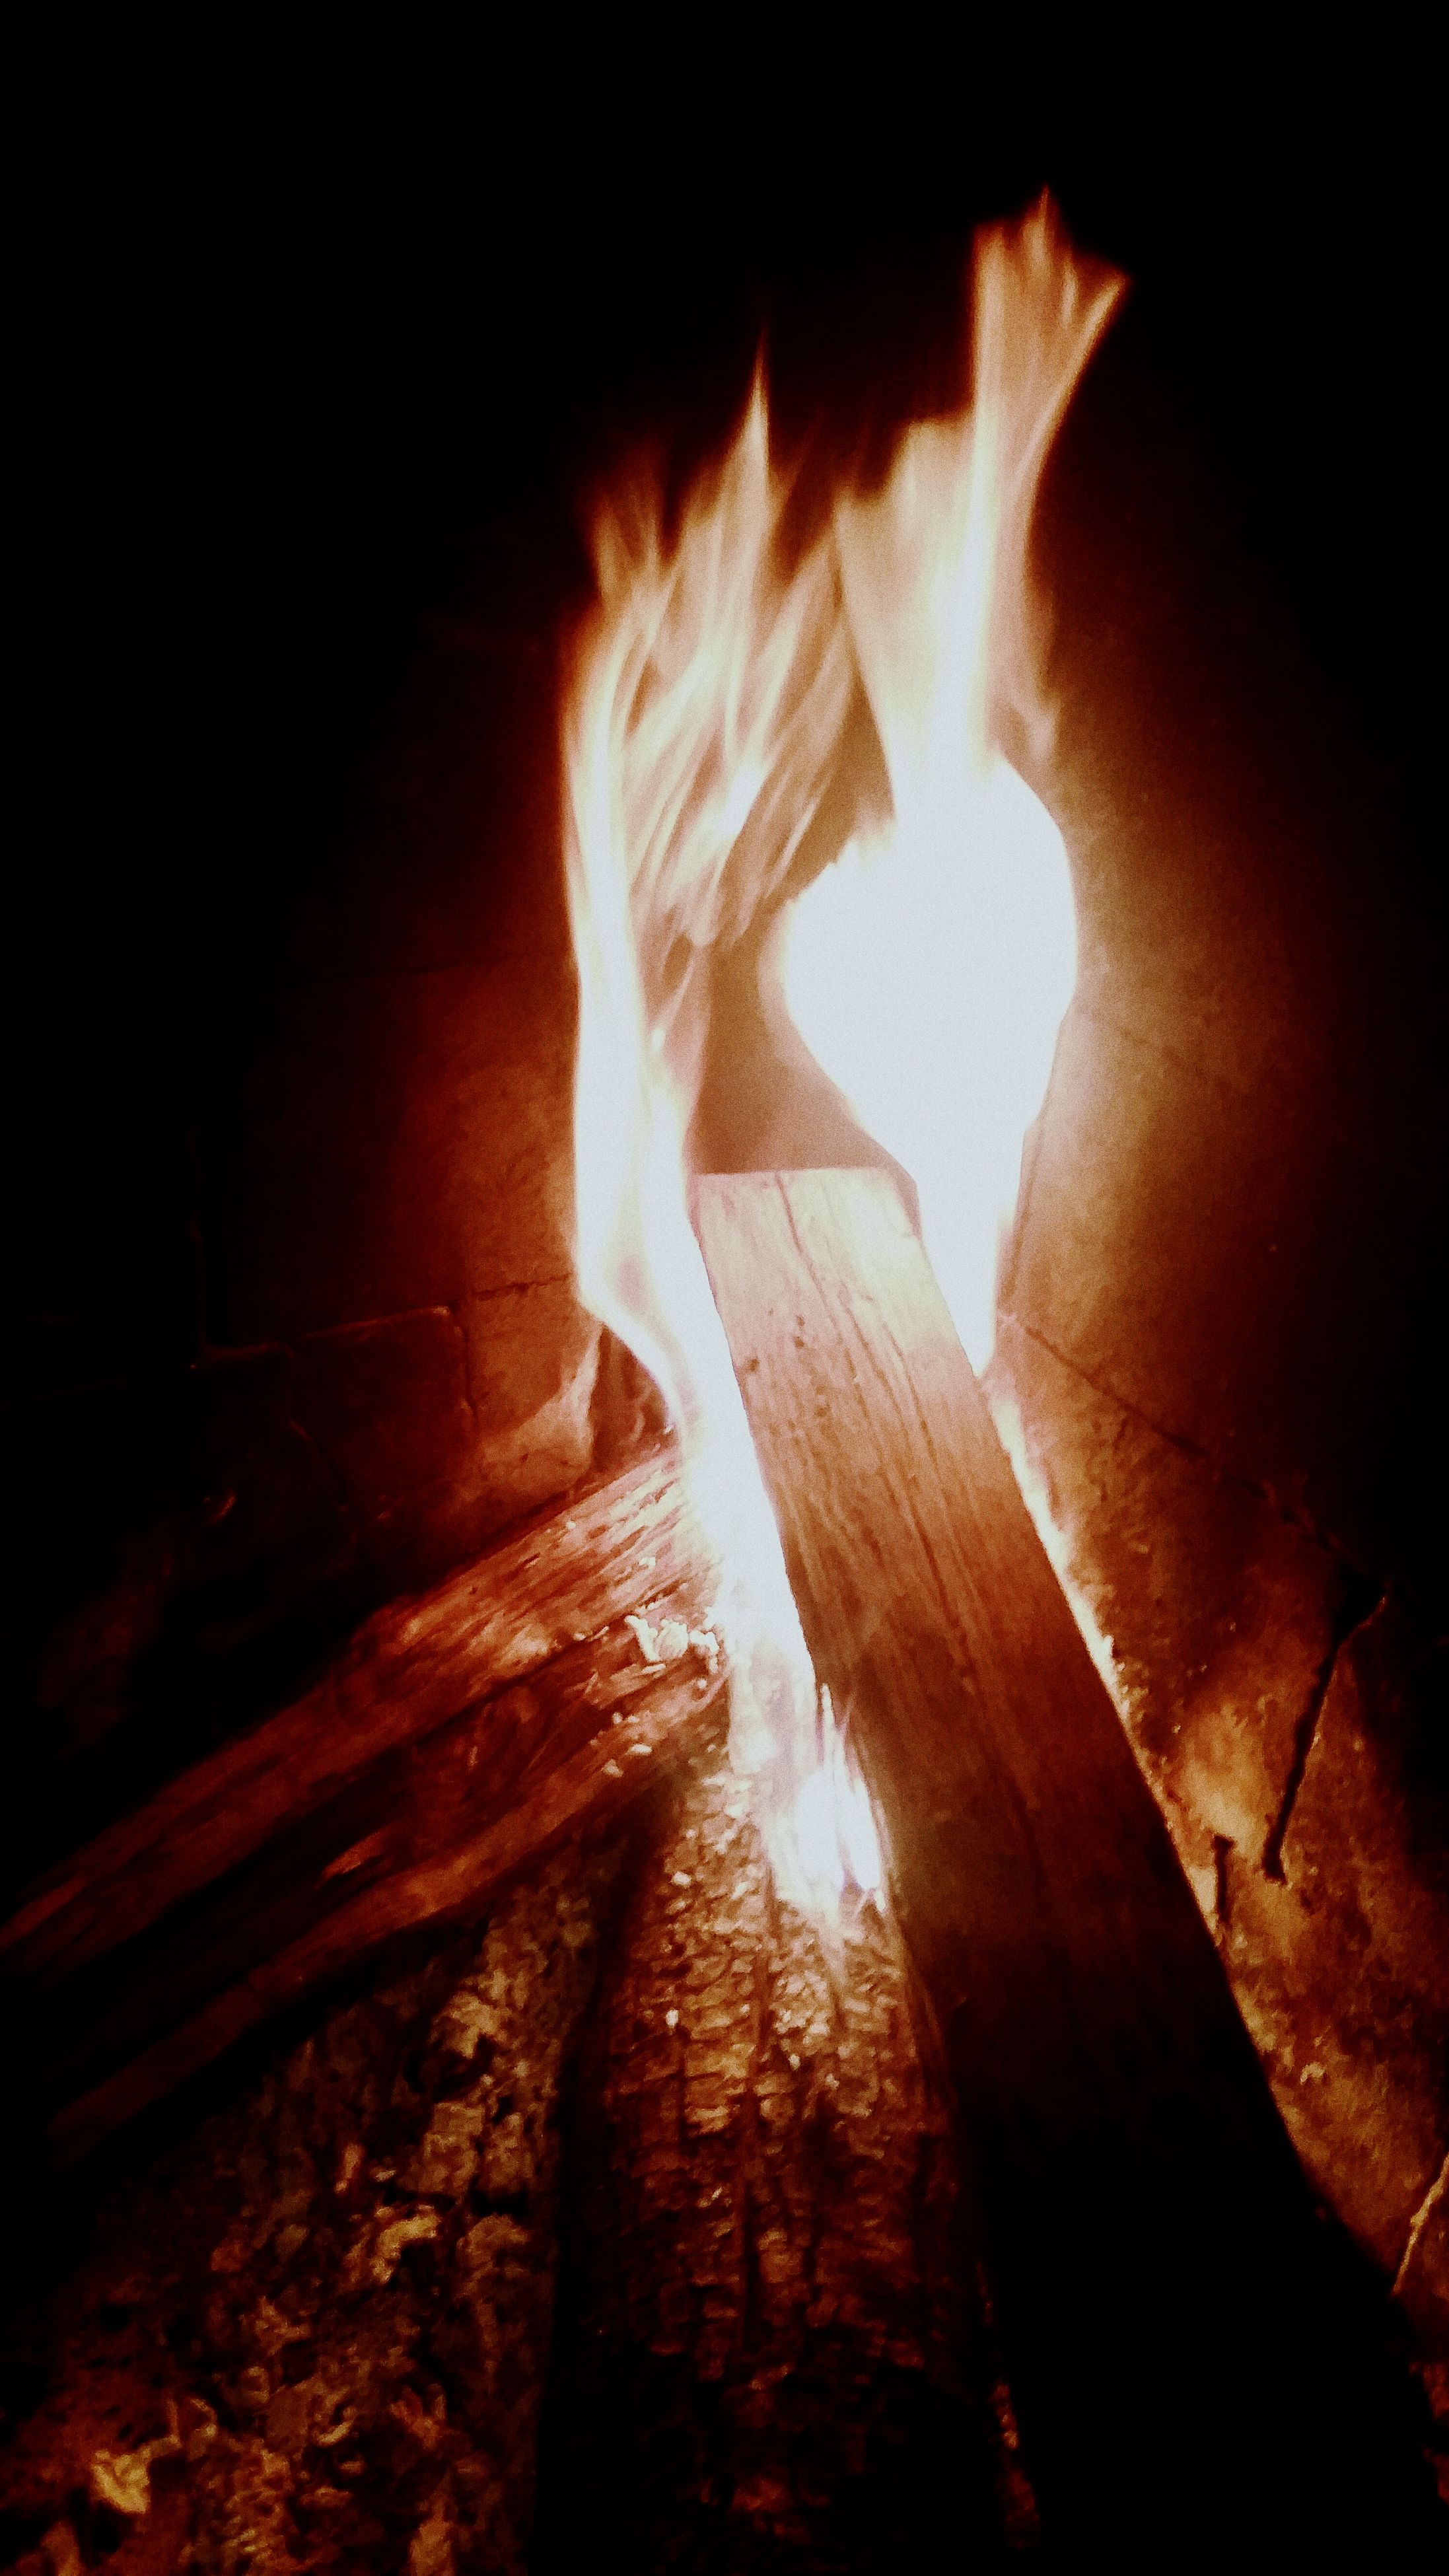 indoors, illuminated, flame, burning, night, fire - natural phenomenon, heat - temperature, glowing, light - natural phenomenon, dark, low angle view, wall - building feature, wood - material, sunlight, no people, close-up, darkroom, shadow, lit, lighting equipment